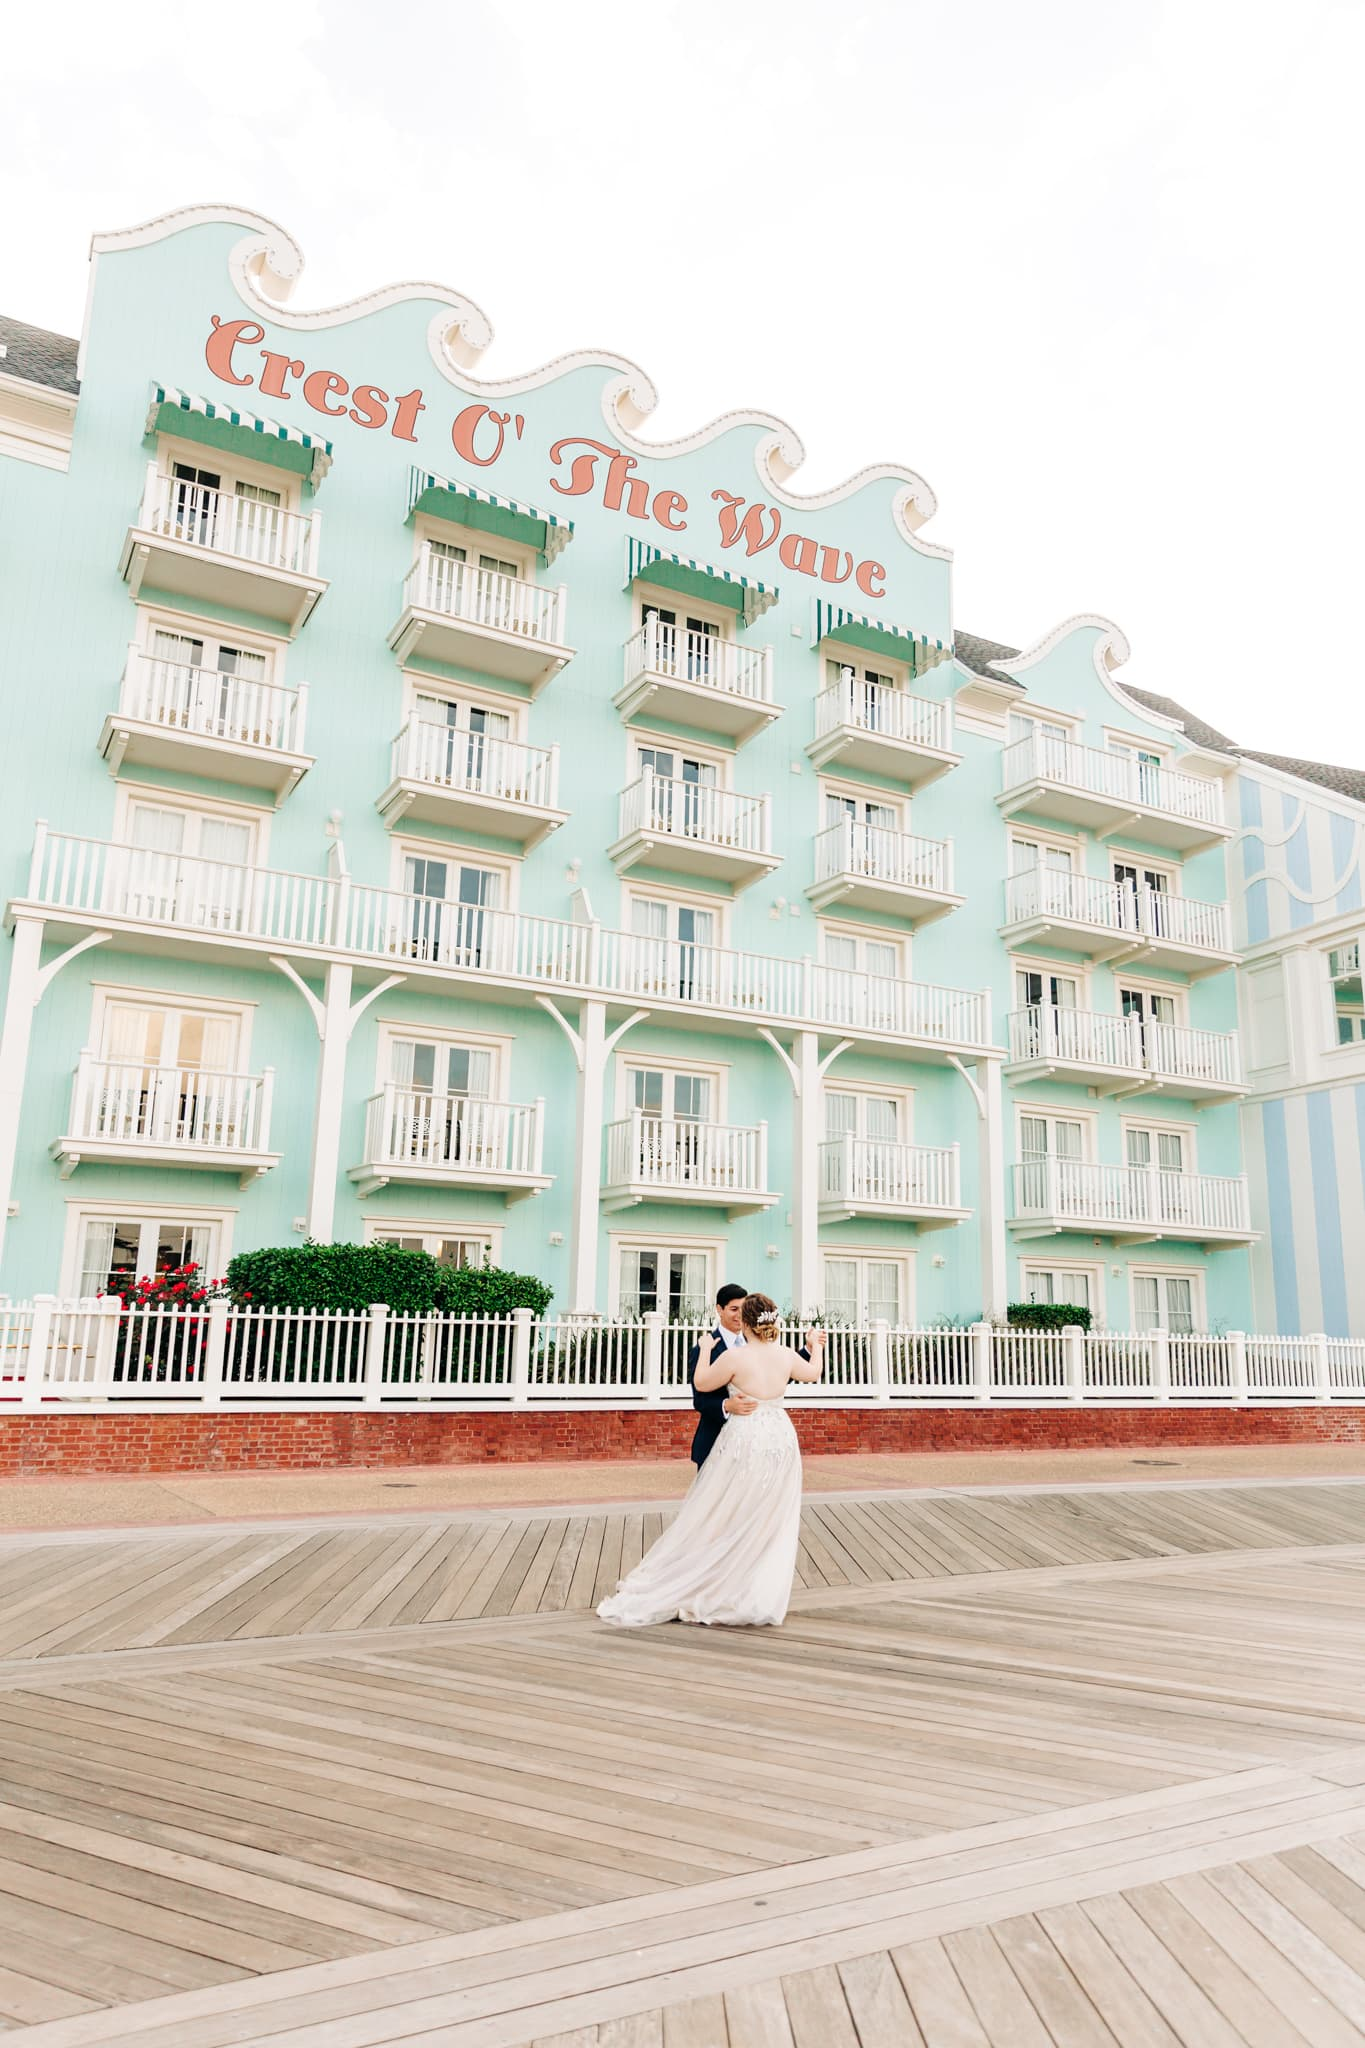 couple slow dancing on the Disney boardwalk in front of the crest of the wave blue hotel on the lake